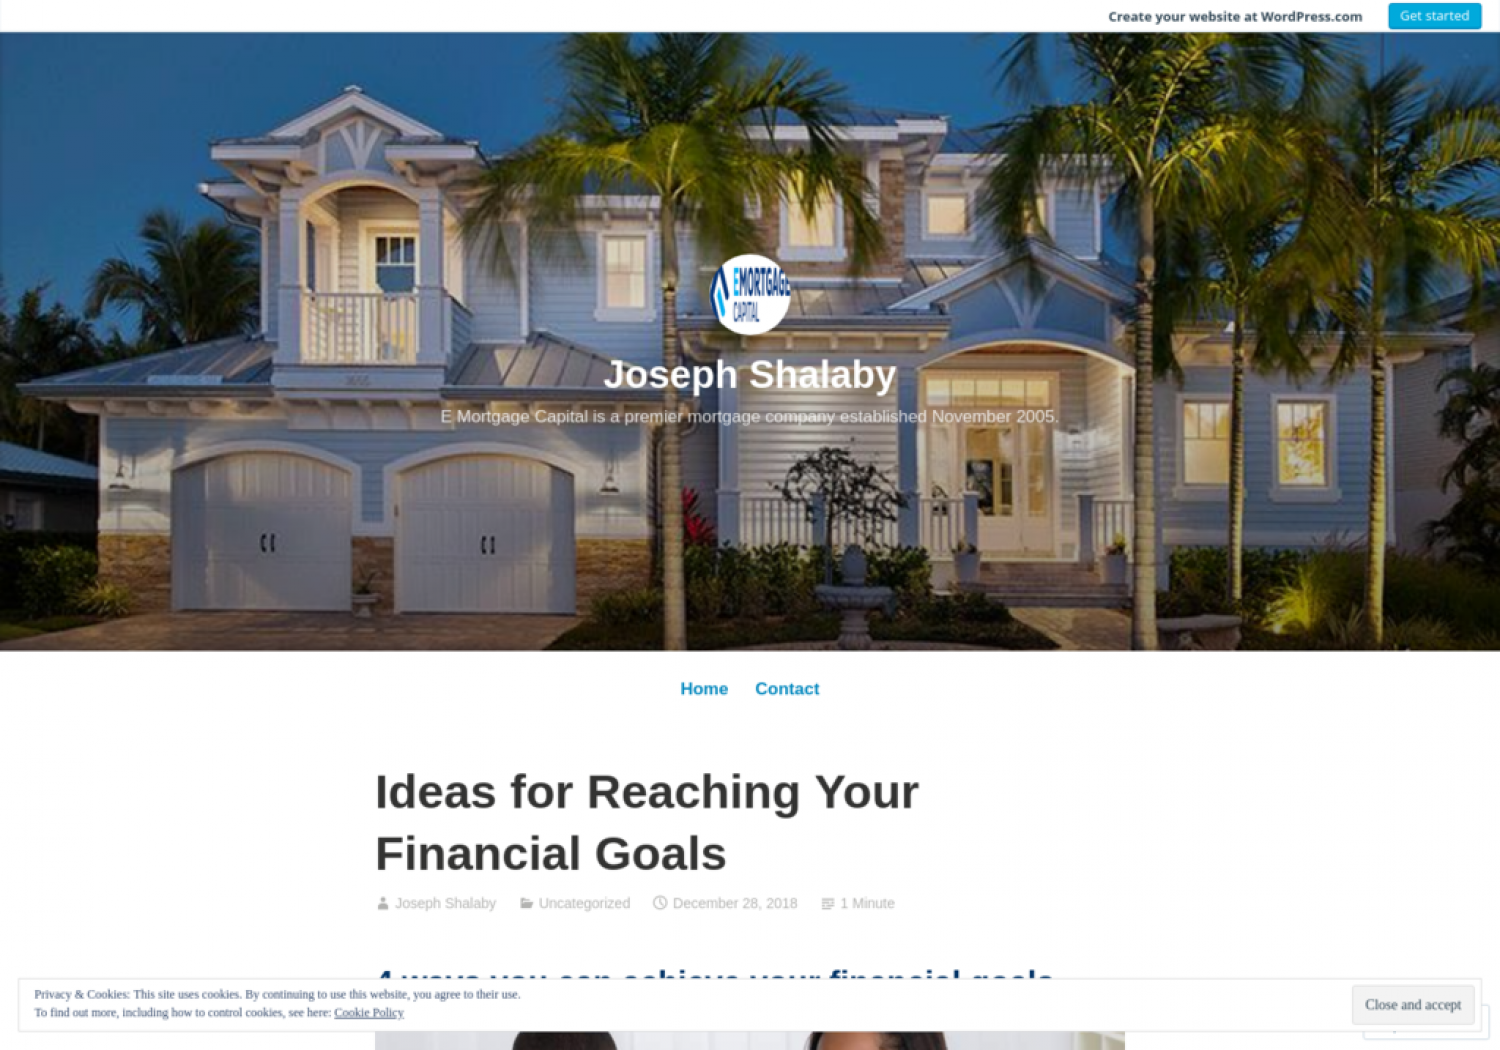 Ideas for Reaching Your Financial Goals - Joseph Shalaby Infographic